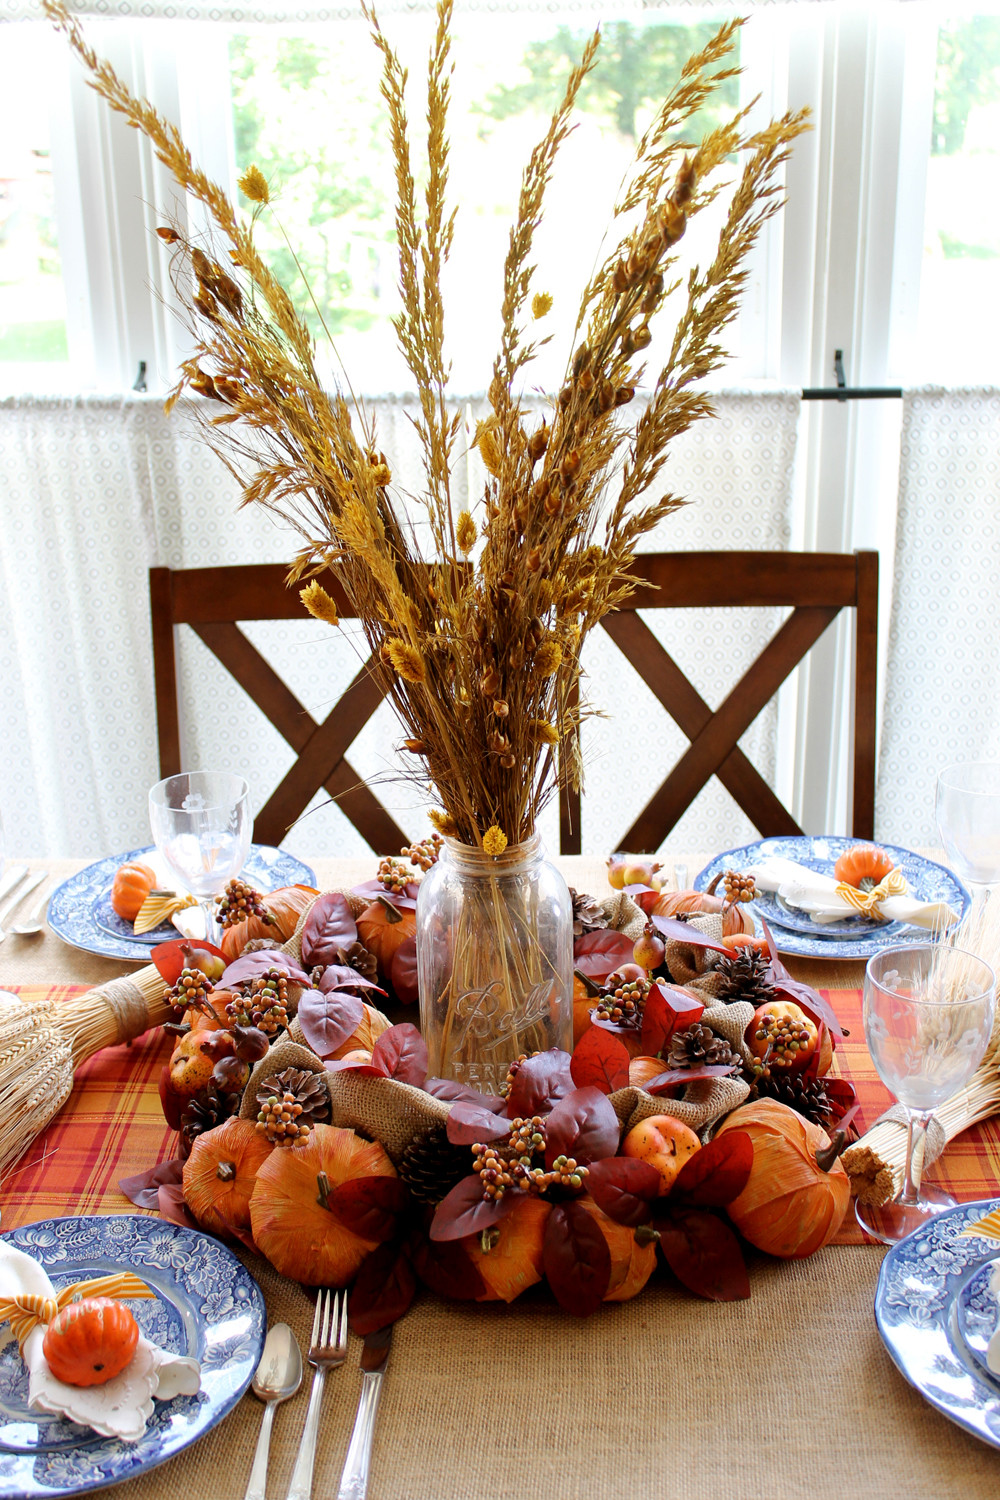 Diy Thanksgiving Table Decorations  DIY Thanksgiving Decorations for Your Table The Country